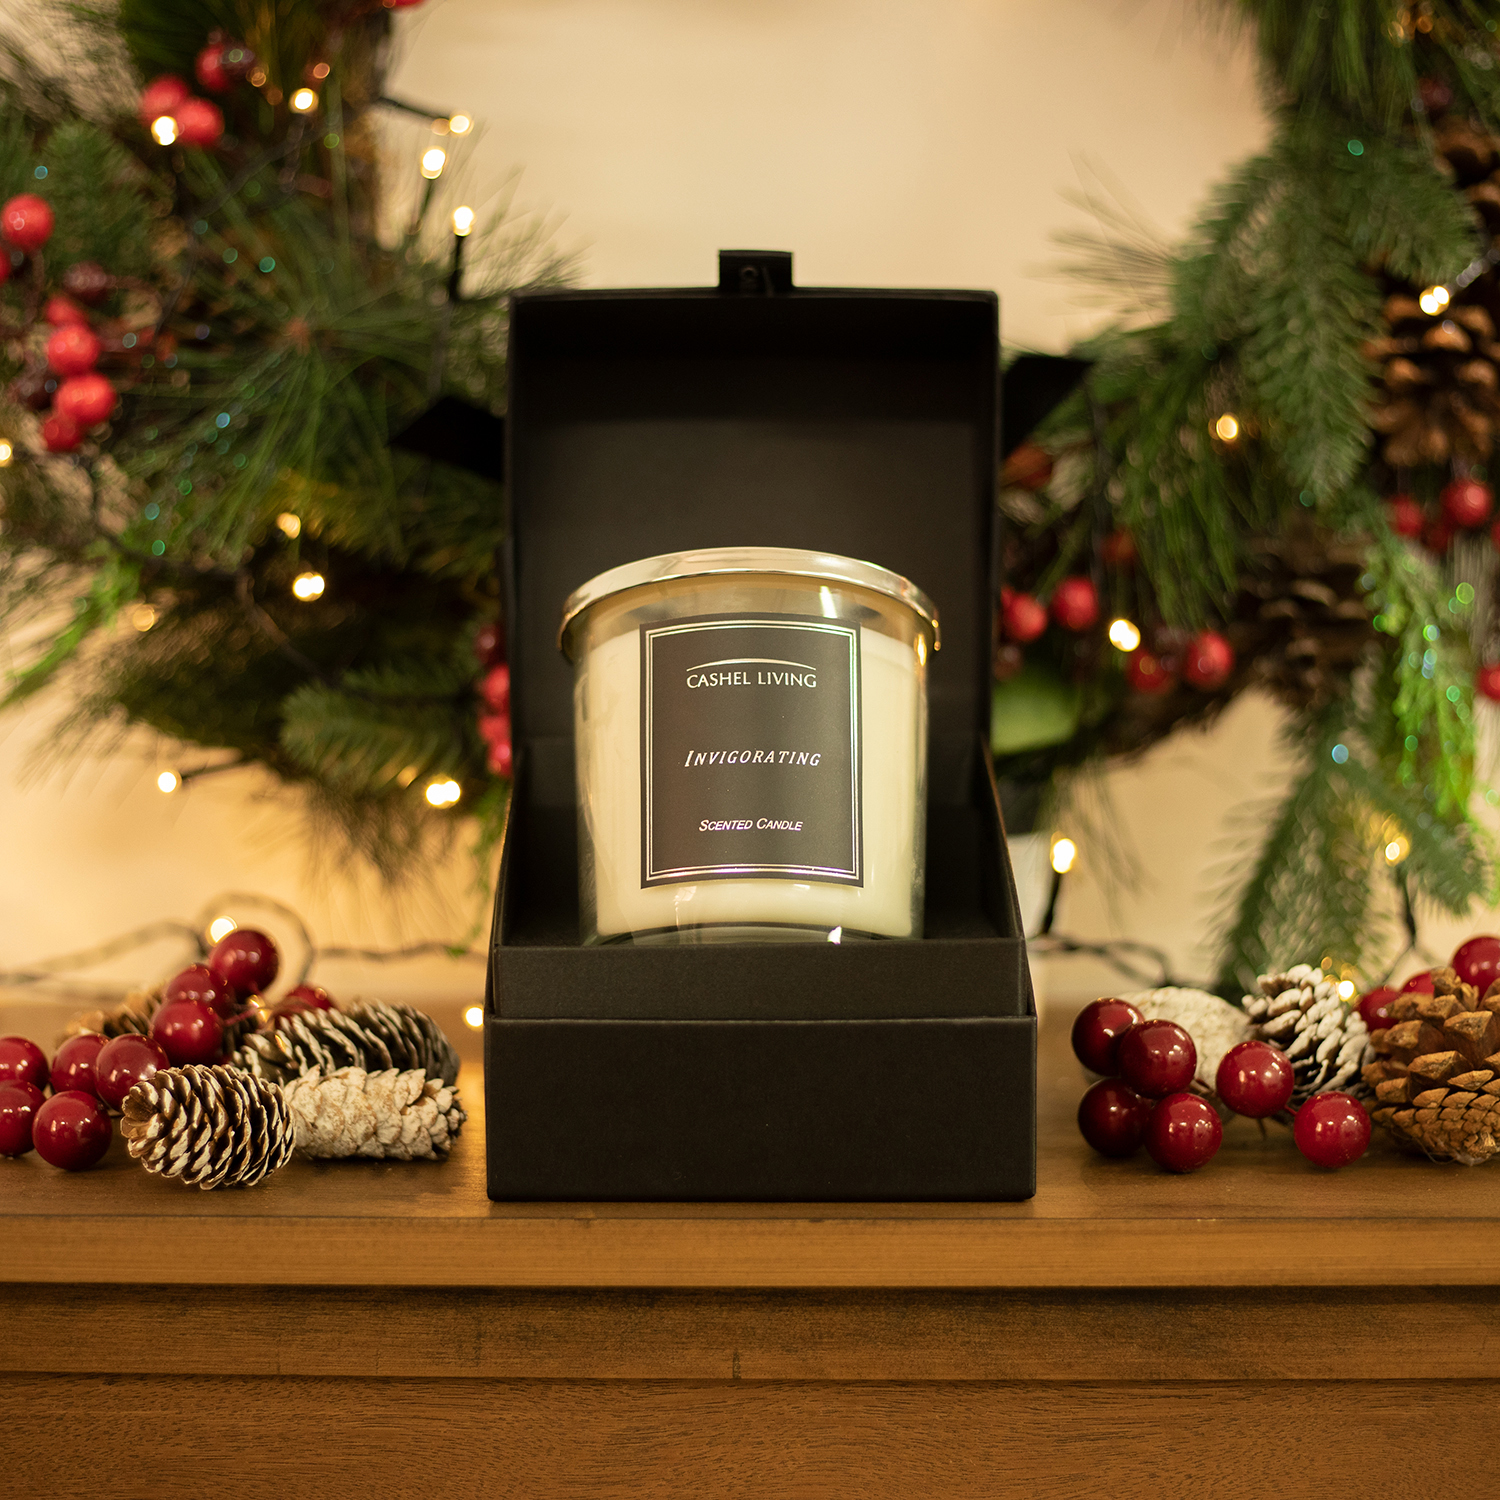 Cashel Living Invigorating Scented Candle